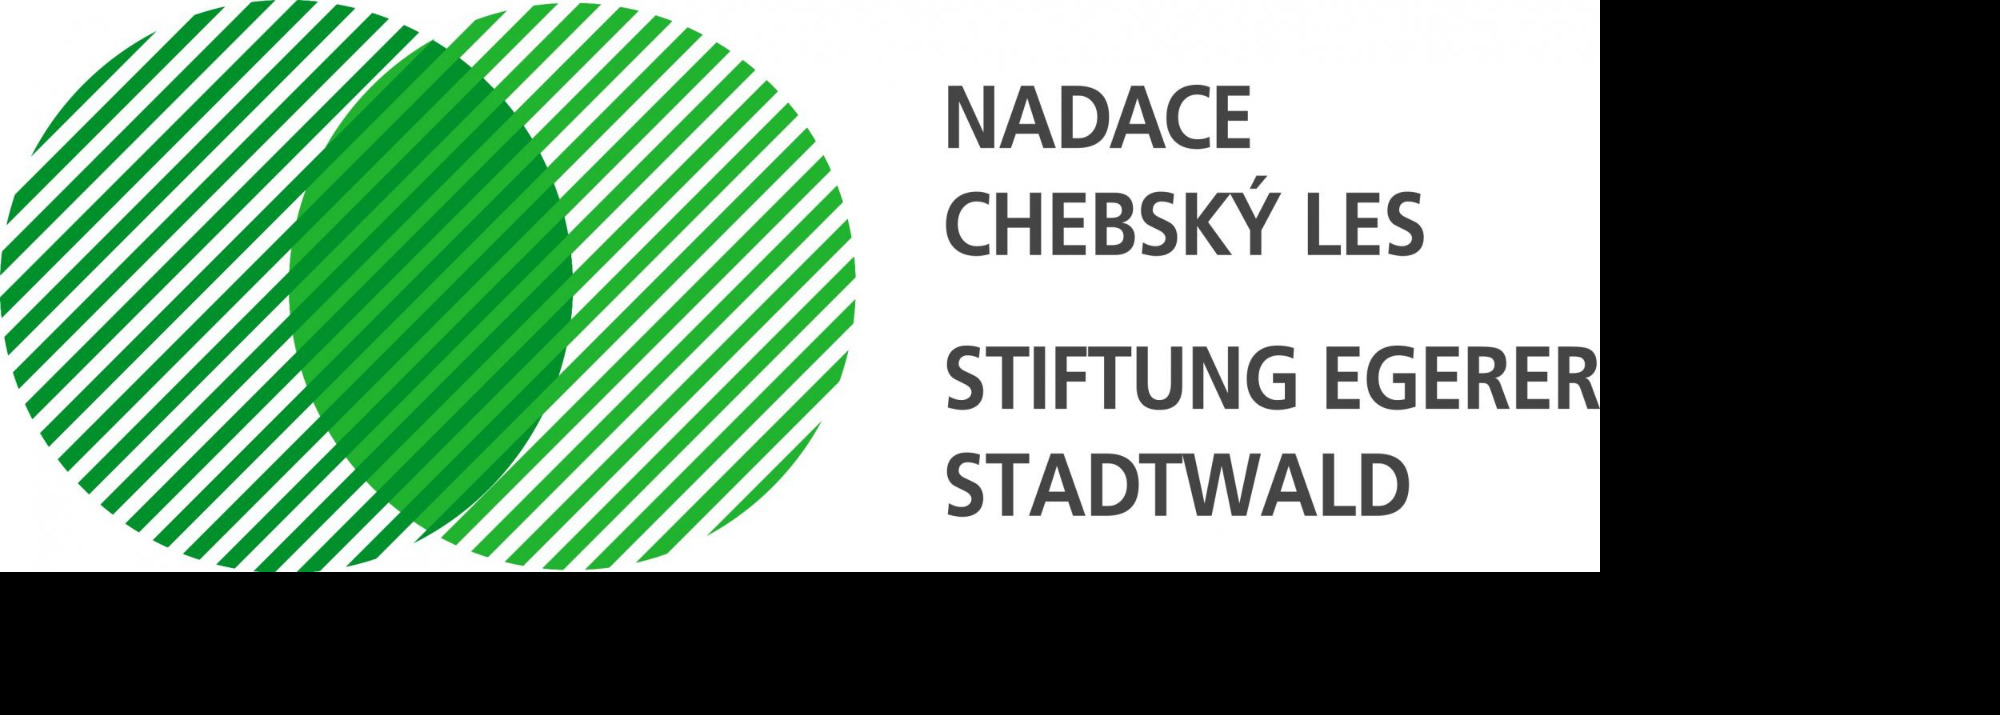 Nadace Chebský les